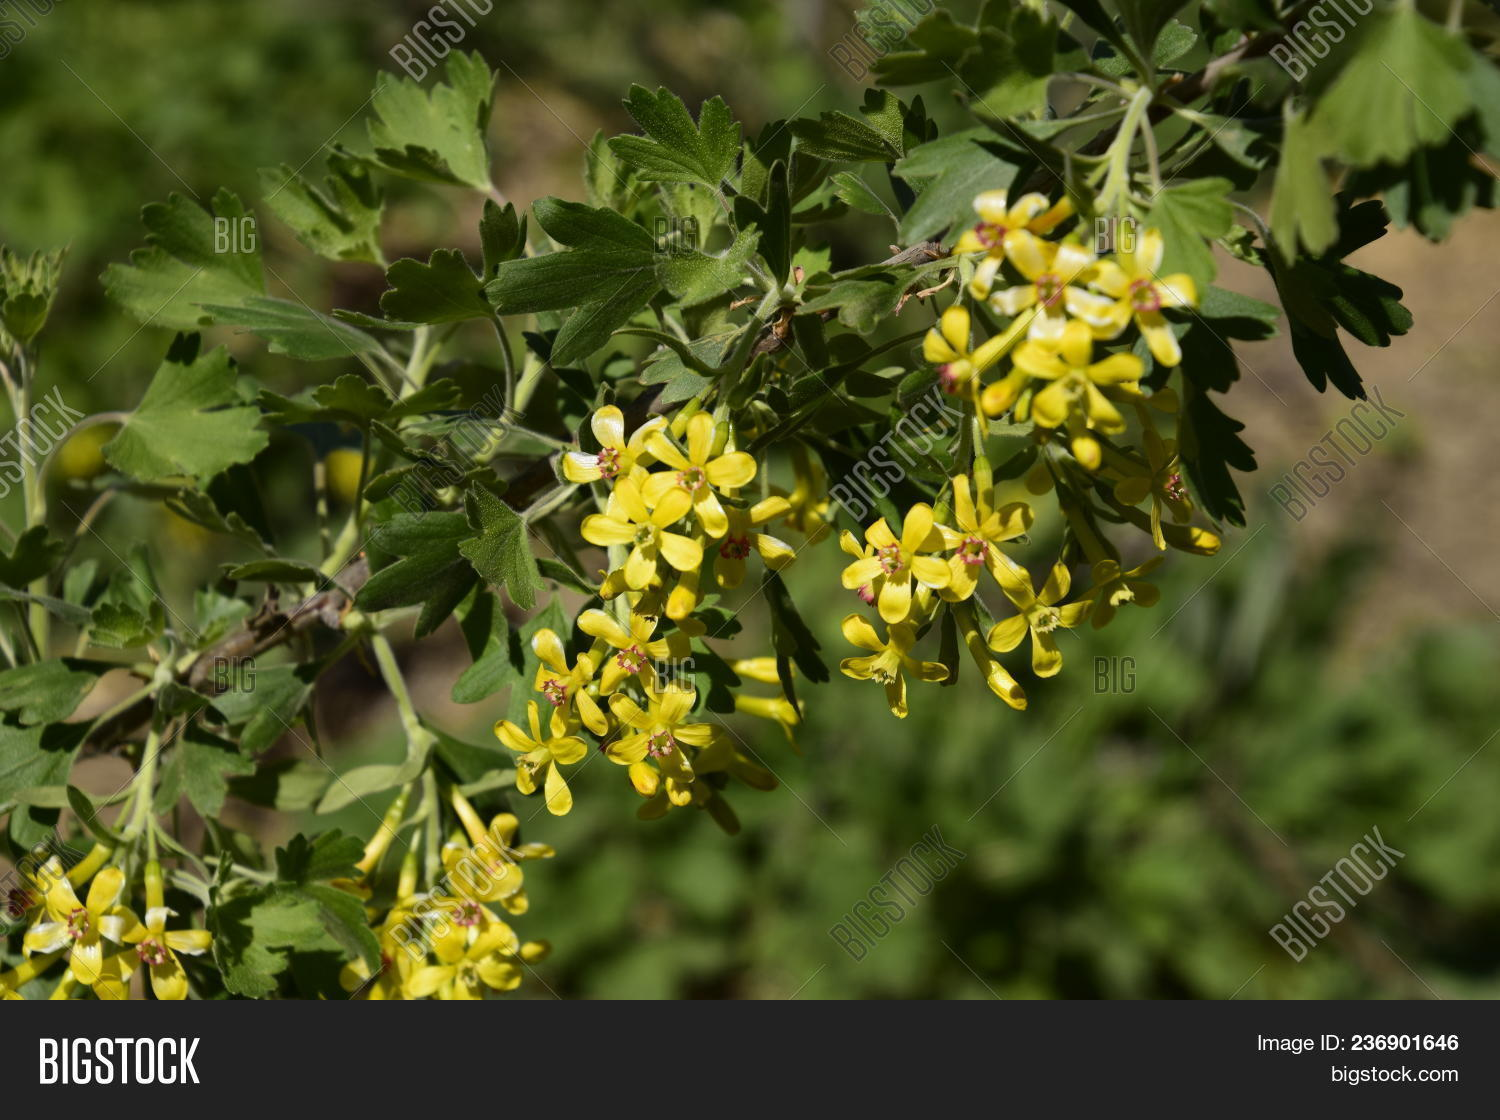 Flowering Currant Bush Image Photo Free Trial Bigstock